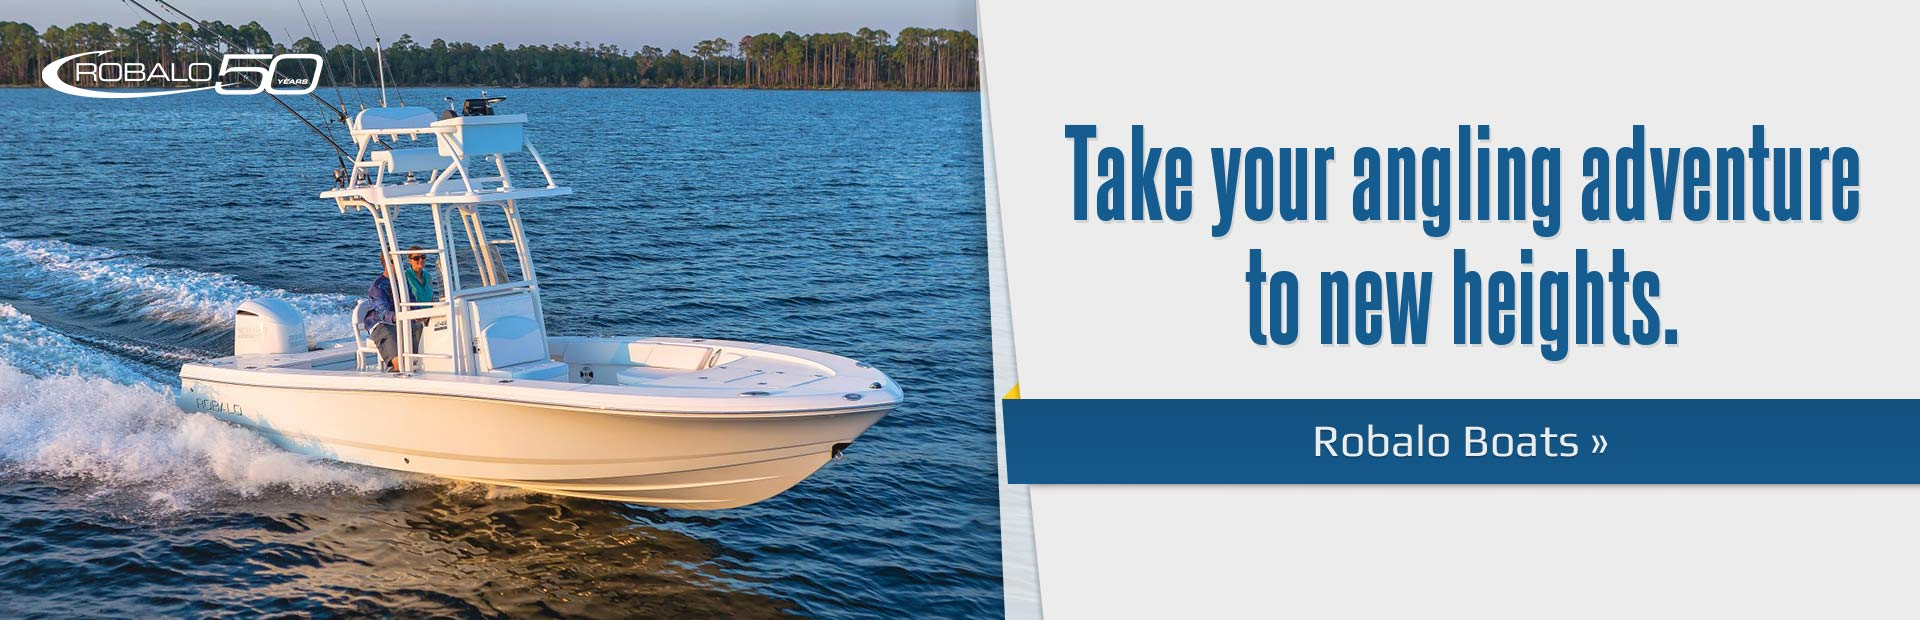 Robalo Boats: Take your angling adventure to new heights.